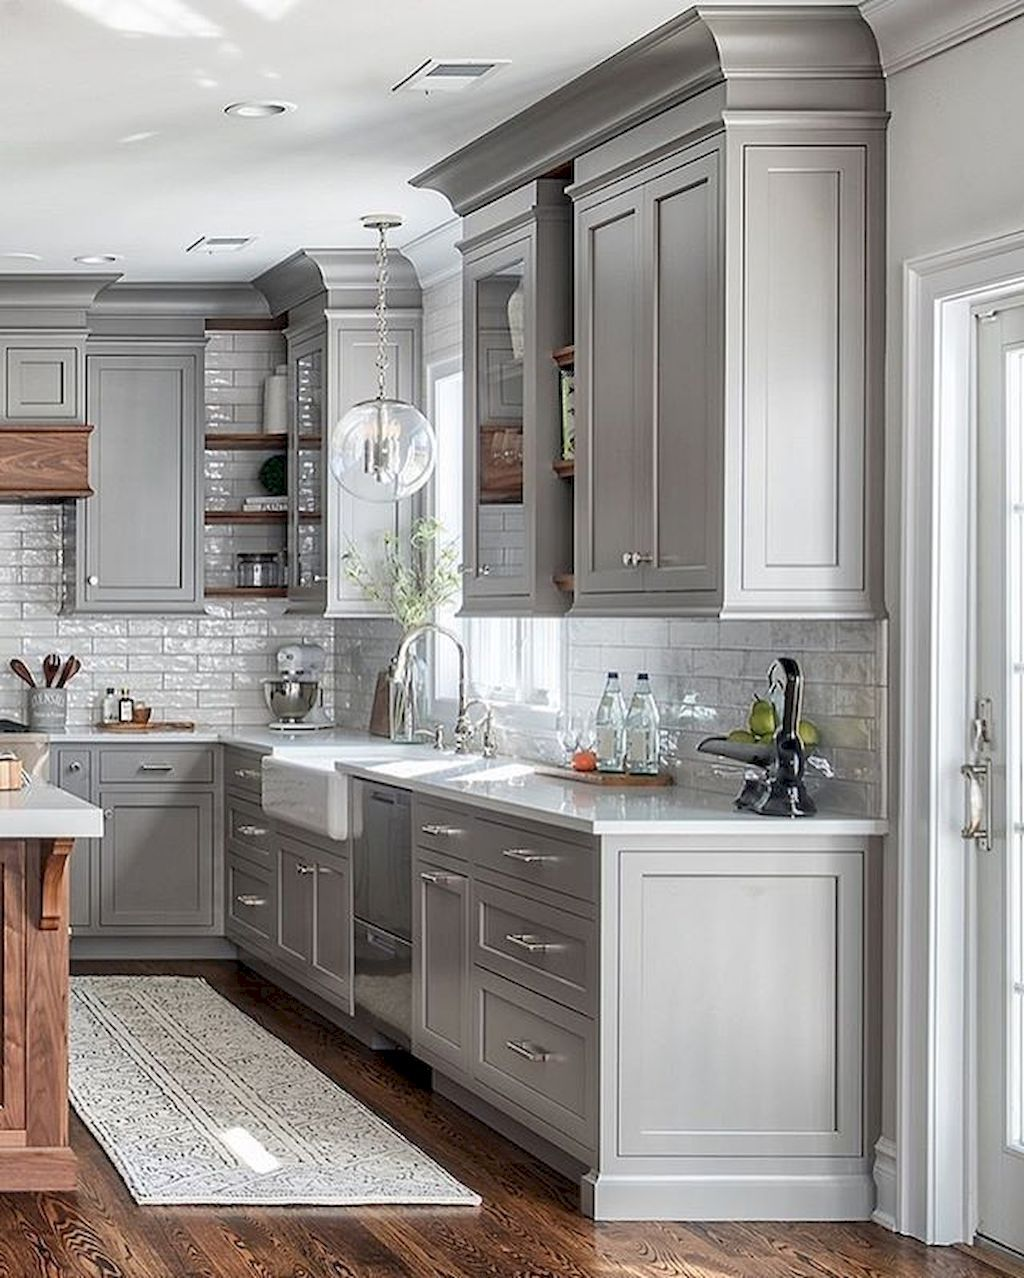 Cool 59 Awesome Gray Kitchen Cabinet Design Ideas Https